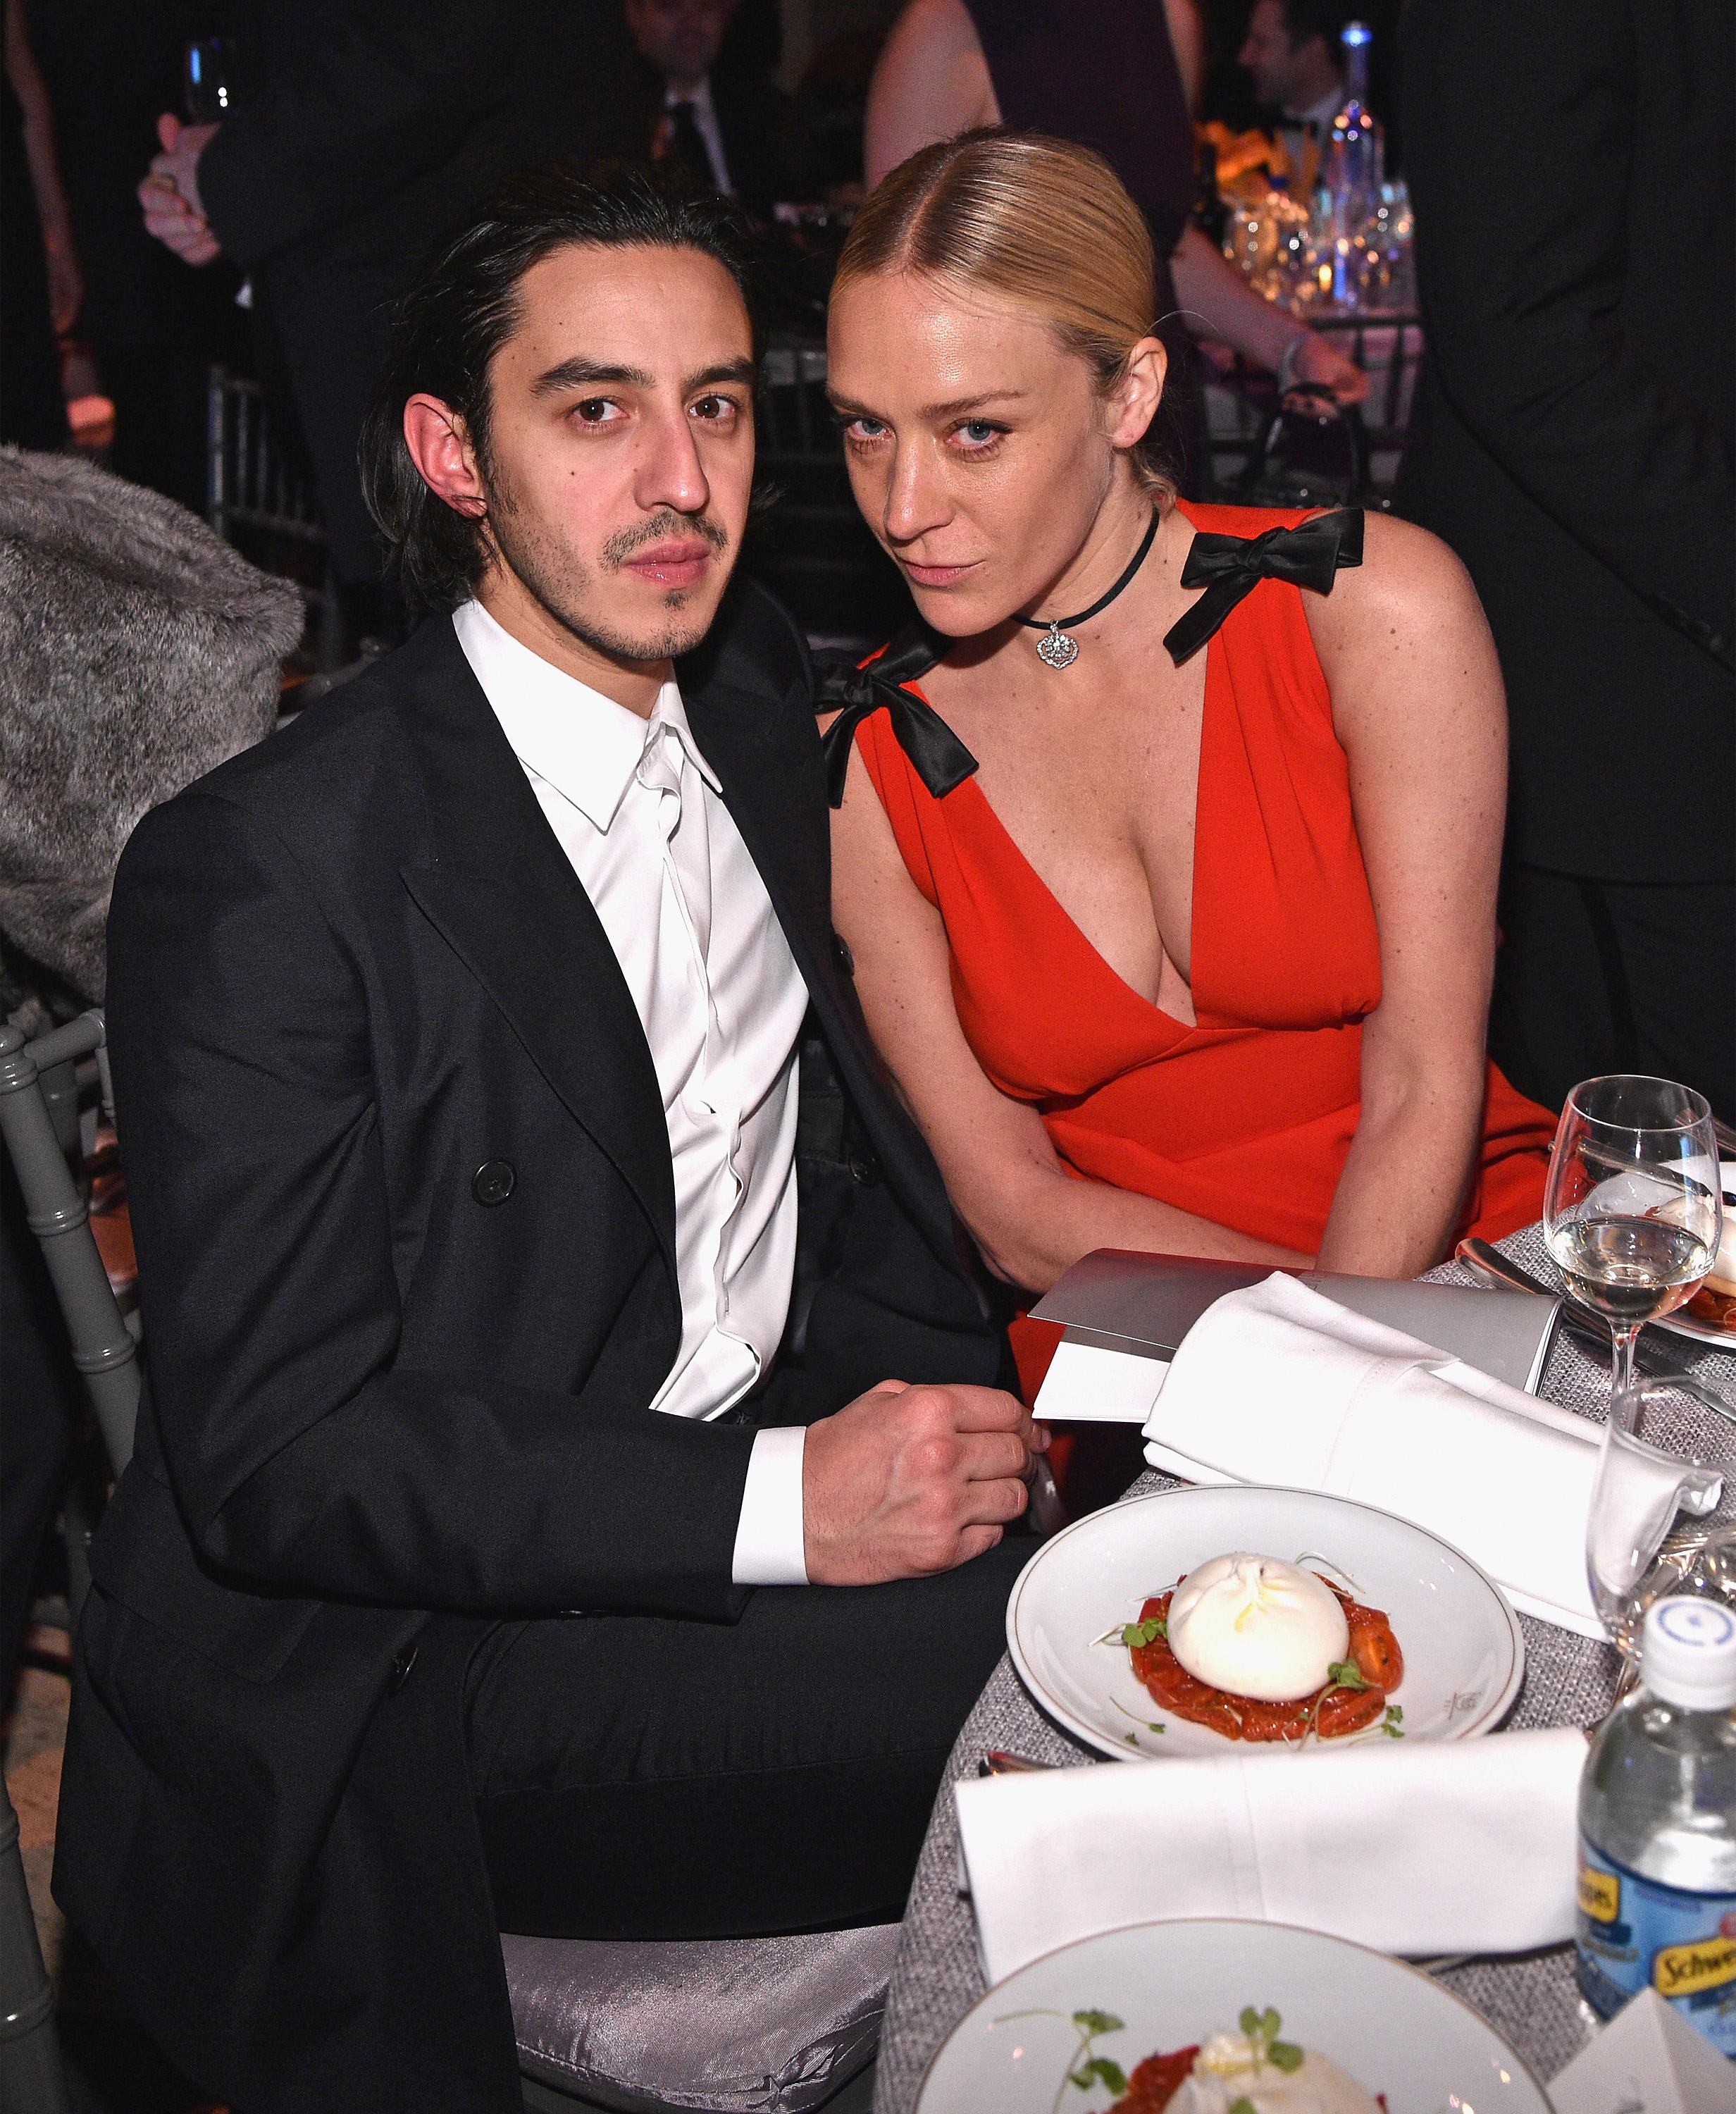 NEW YORK, NY - FEBRUARY 08: Ricky Saiz and Chloe Sevigny attends as Moet & Chandon Toasts to the amfAR New York Gala At Cipriani Wall Street at Cipriani Wall Street on February 8, 2017 in New York City.  (Photo by Bryan Bedder/Getty Images for Moet & Chandon)